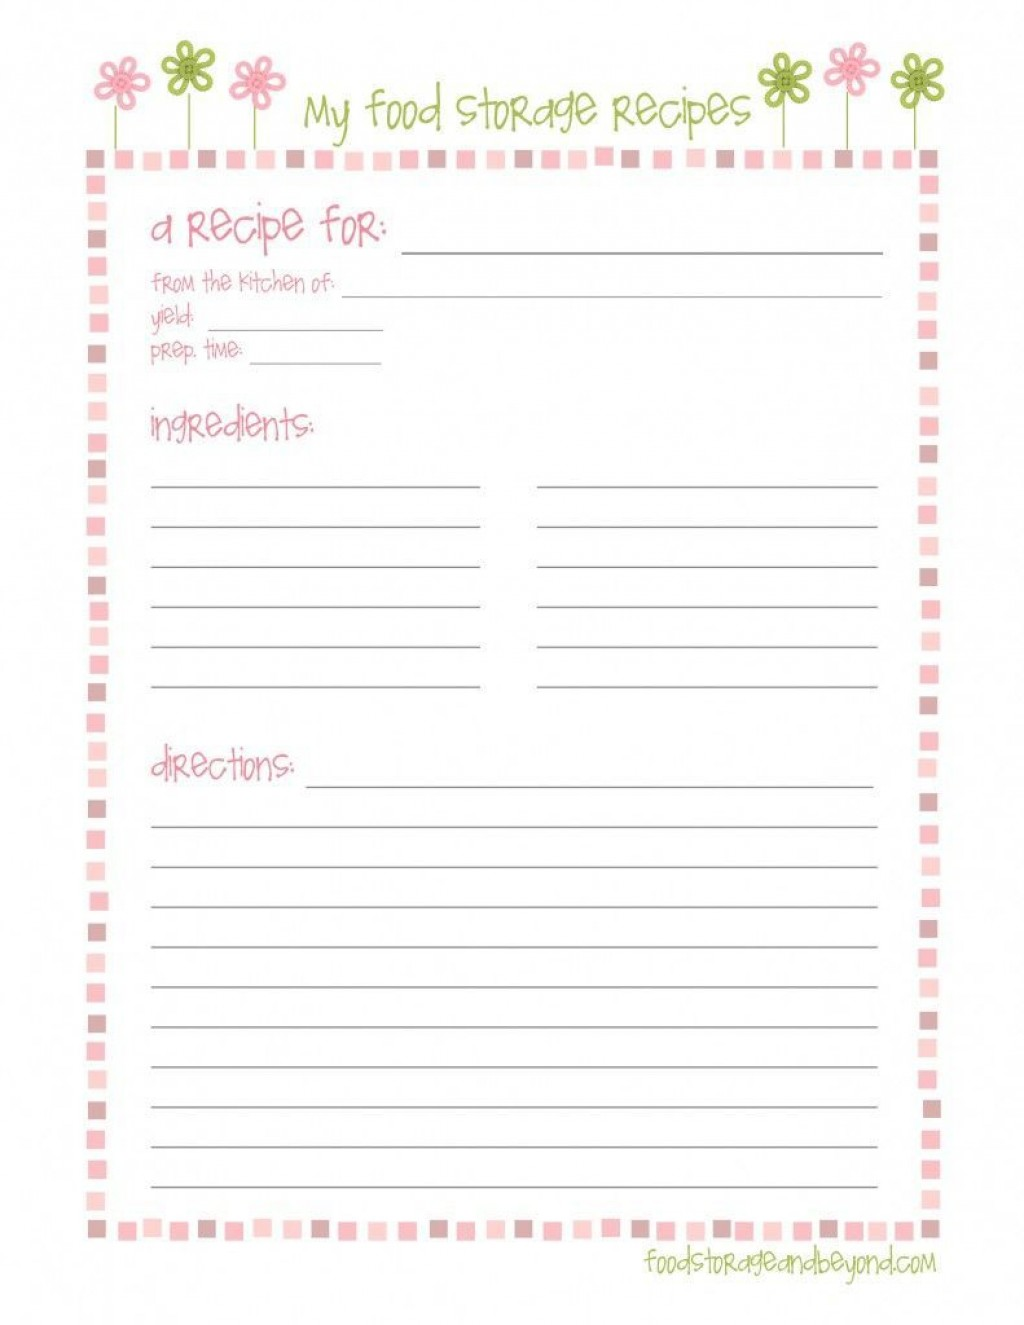 006 Formidable Free Recipe Template For Word Picture  Book Editable Card Microsoft 4x6 PageLarge